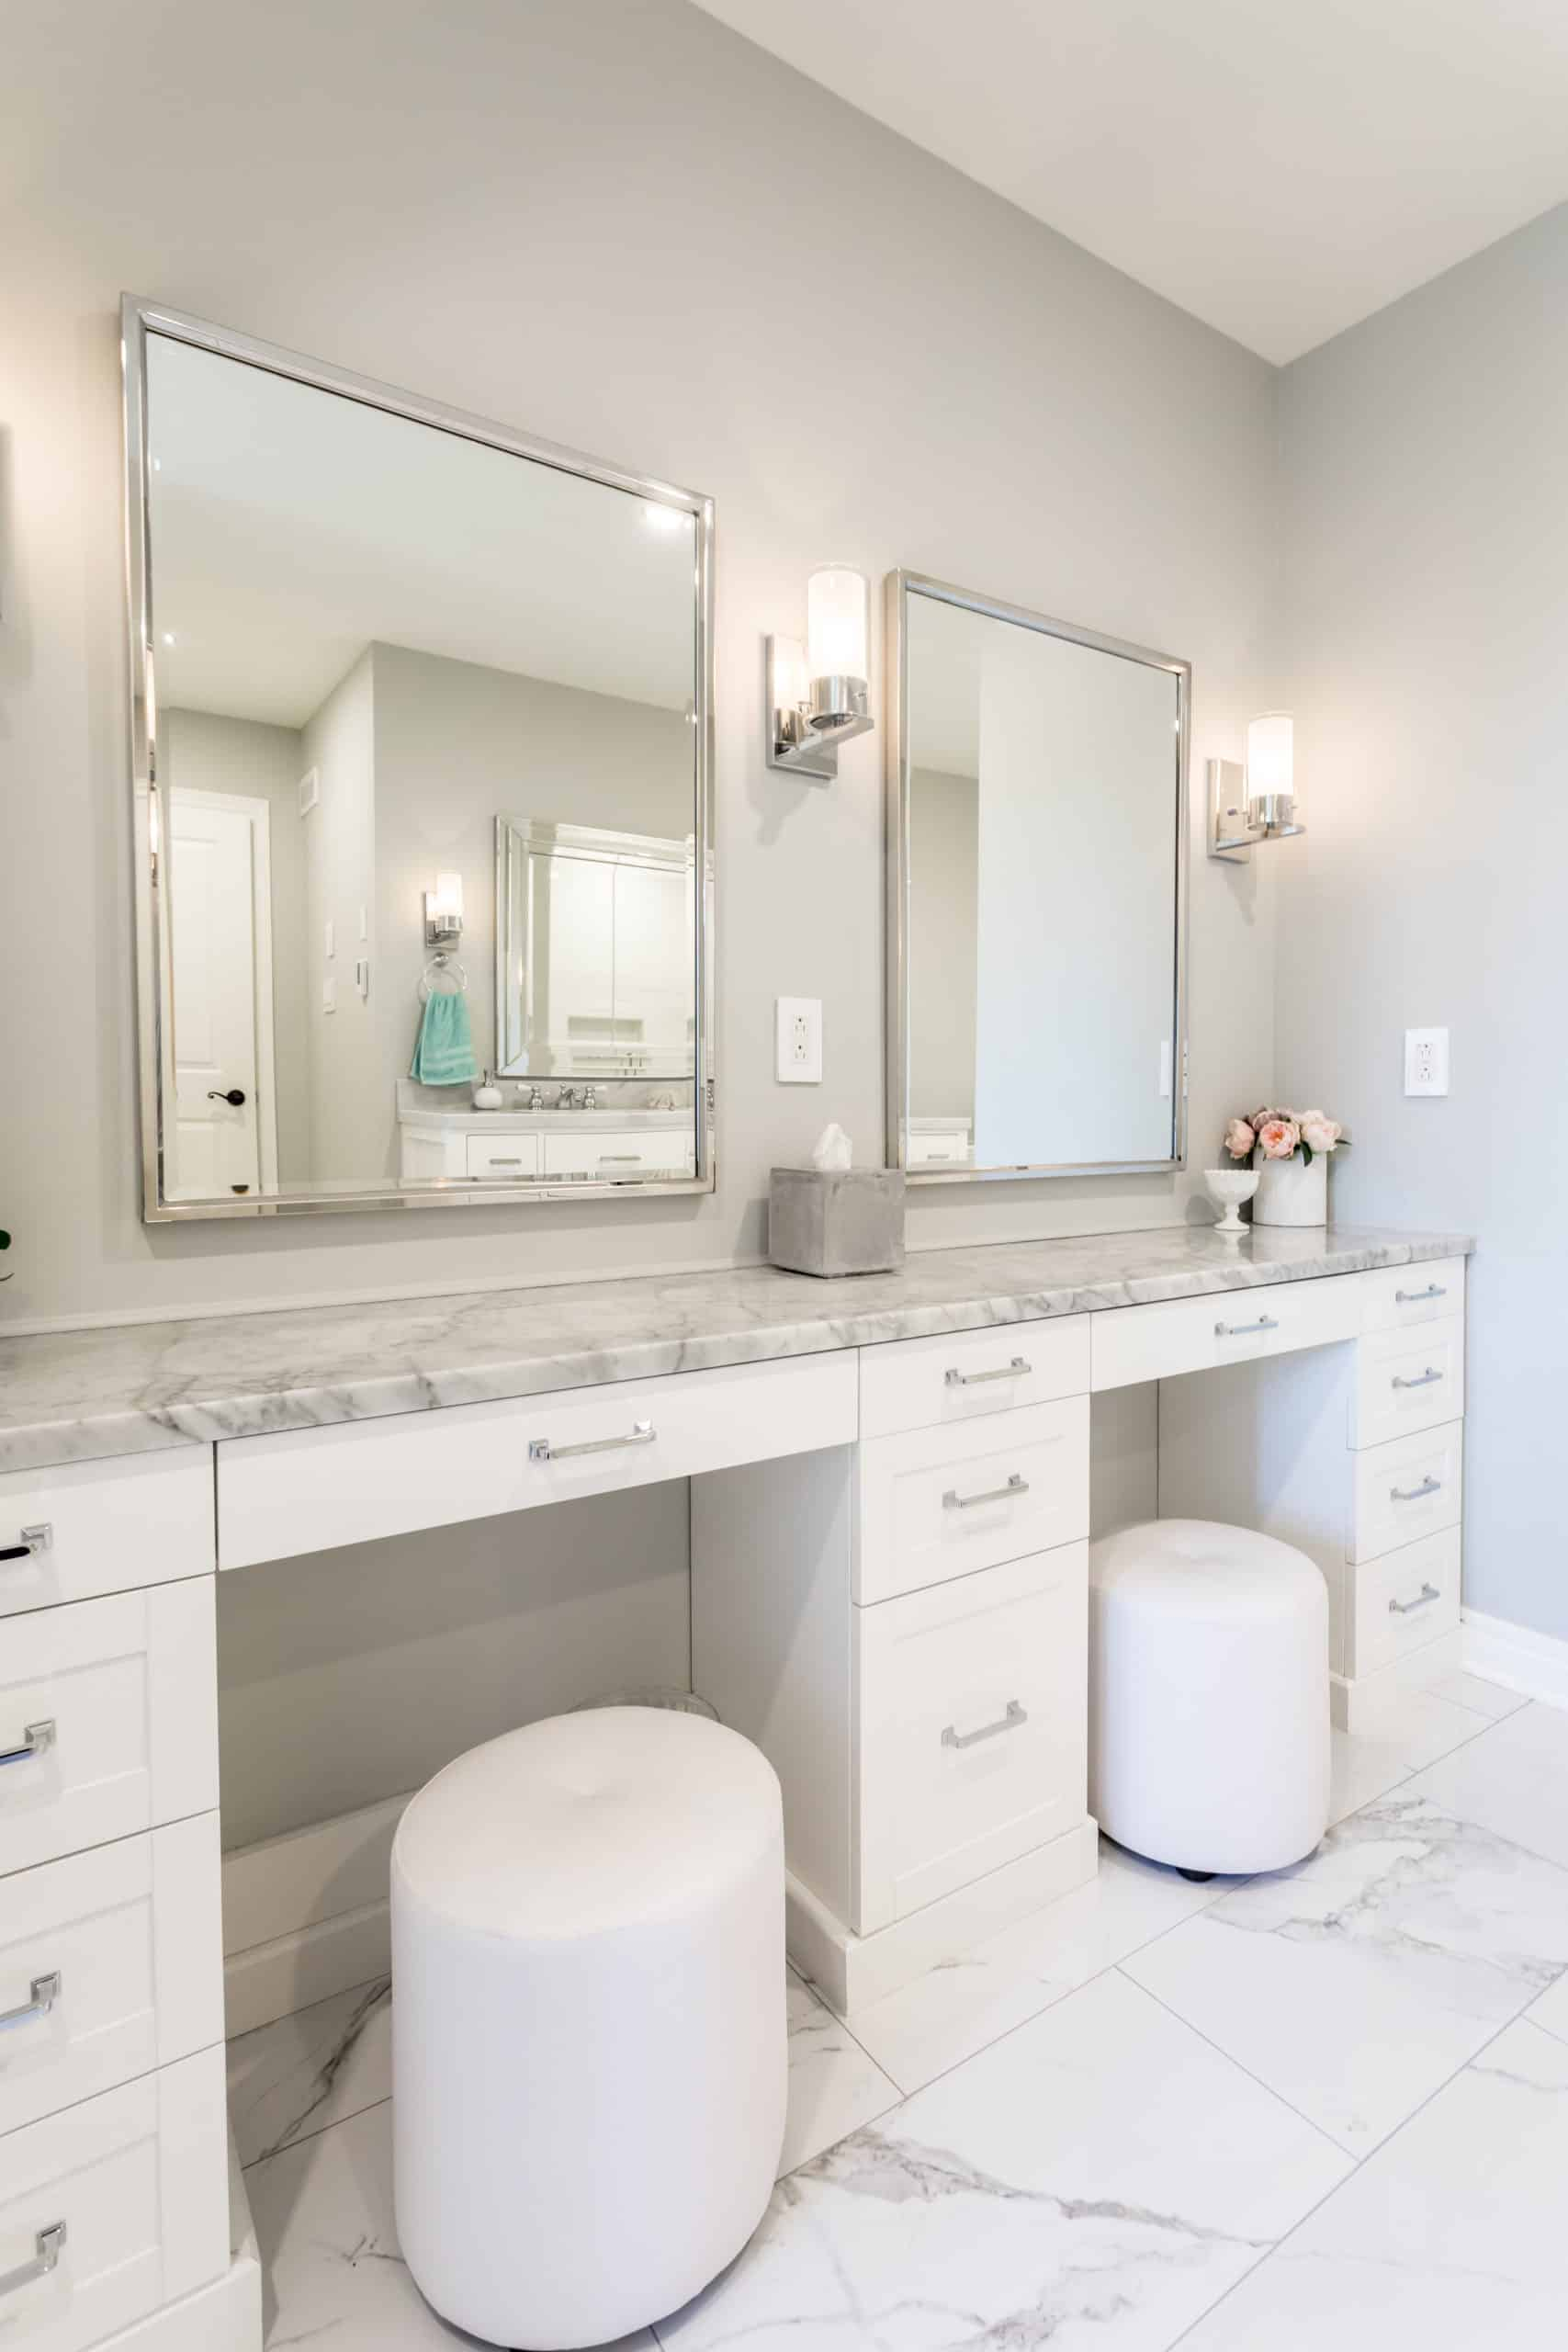 White double makeup vanity with a marble countertop